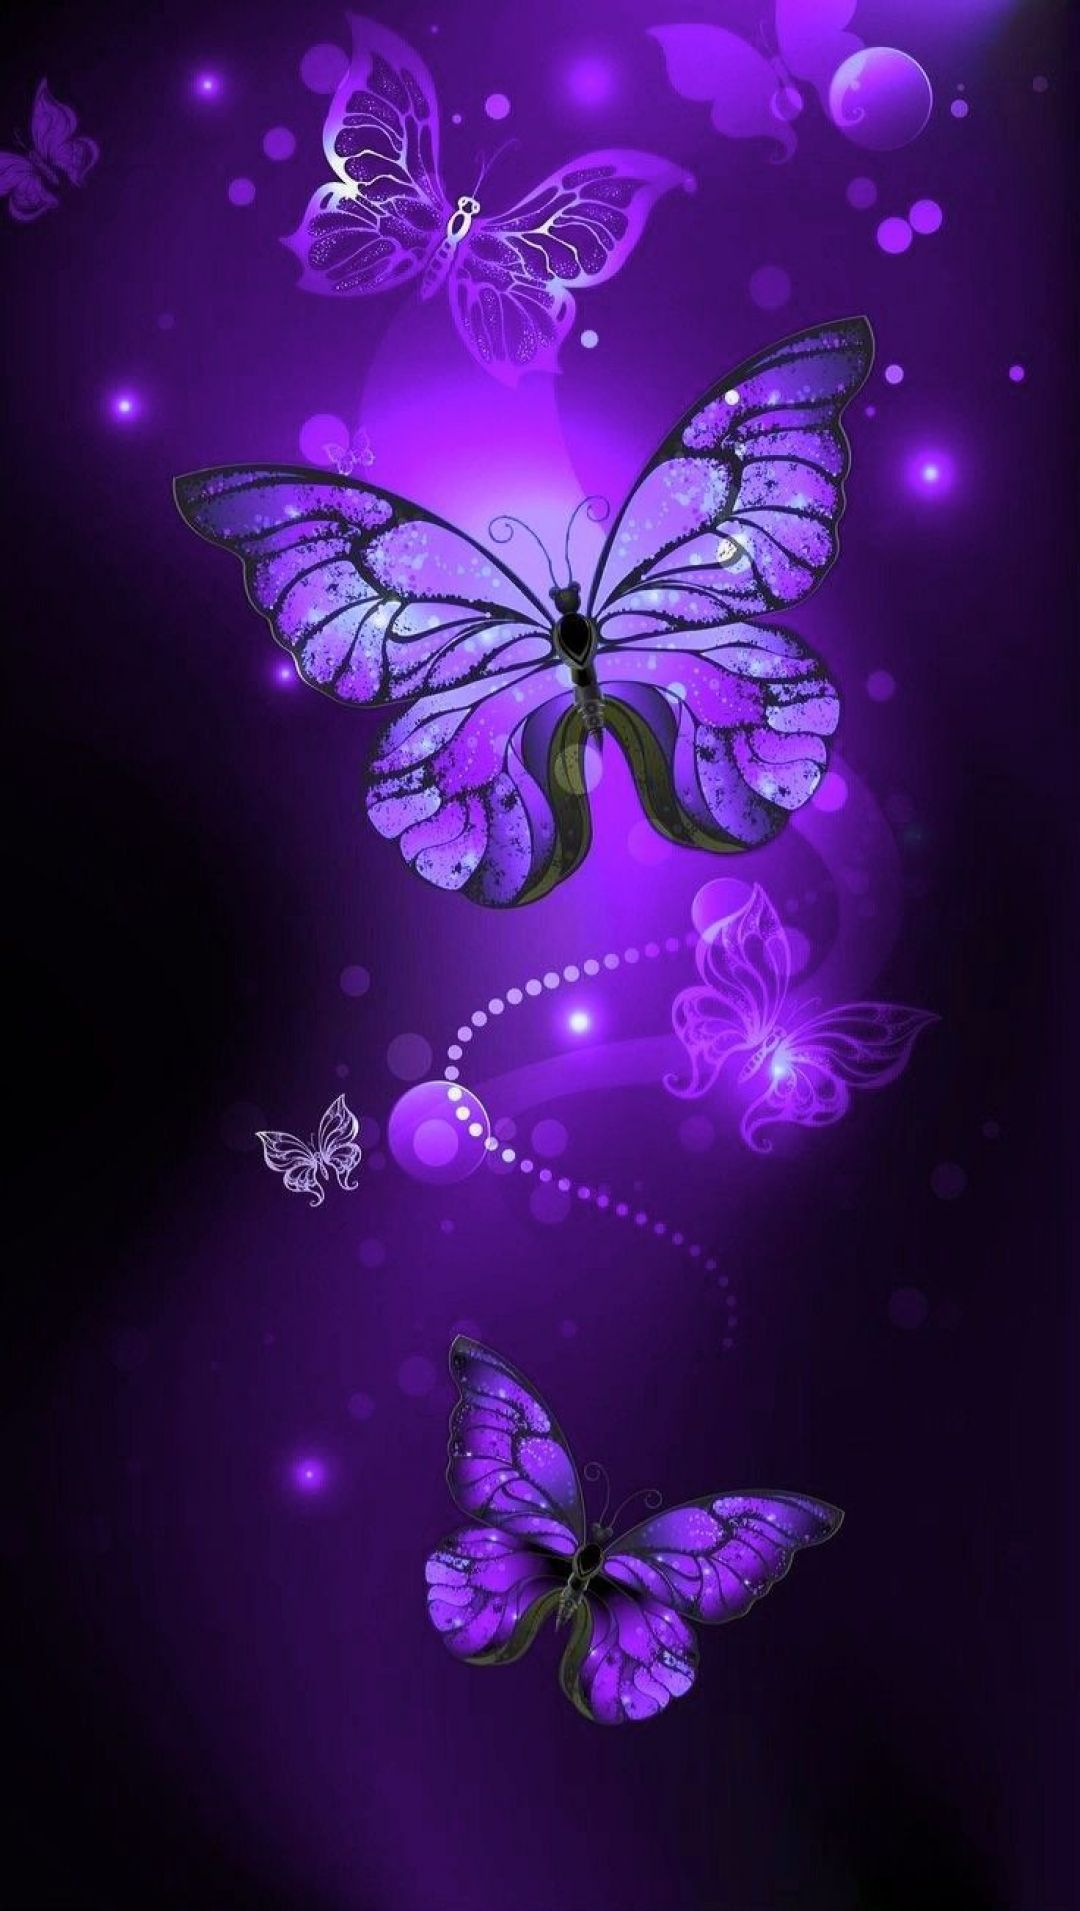 40 Aesthetic Butterfly Android Iphone Desktop Hd Backgrounds Wallpapers 1080p 4k 1080x1911 2020